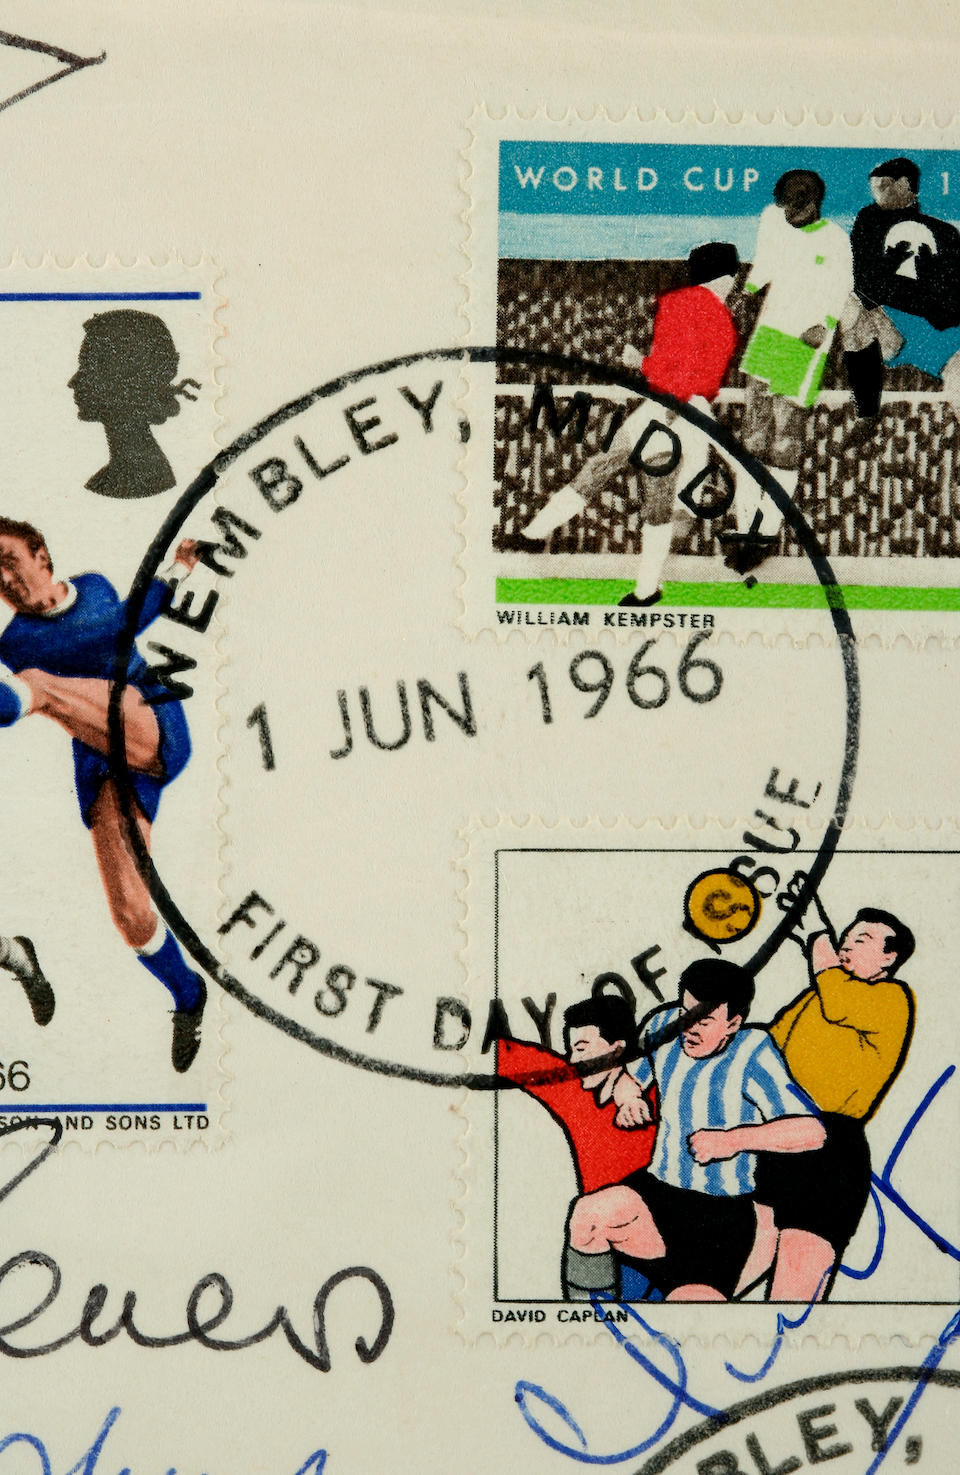 A fully signed 1966 World Cup First Day Cover